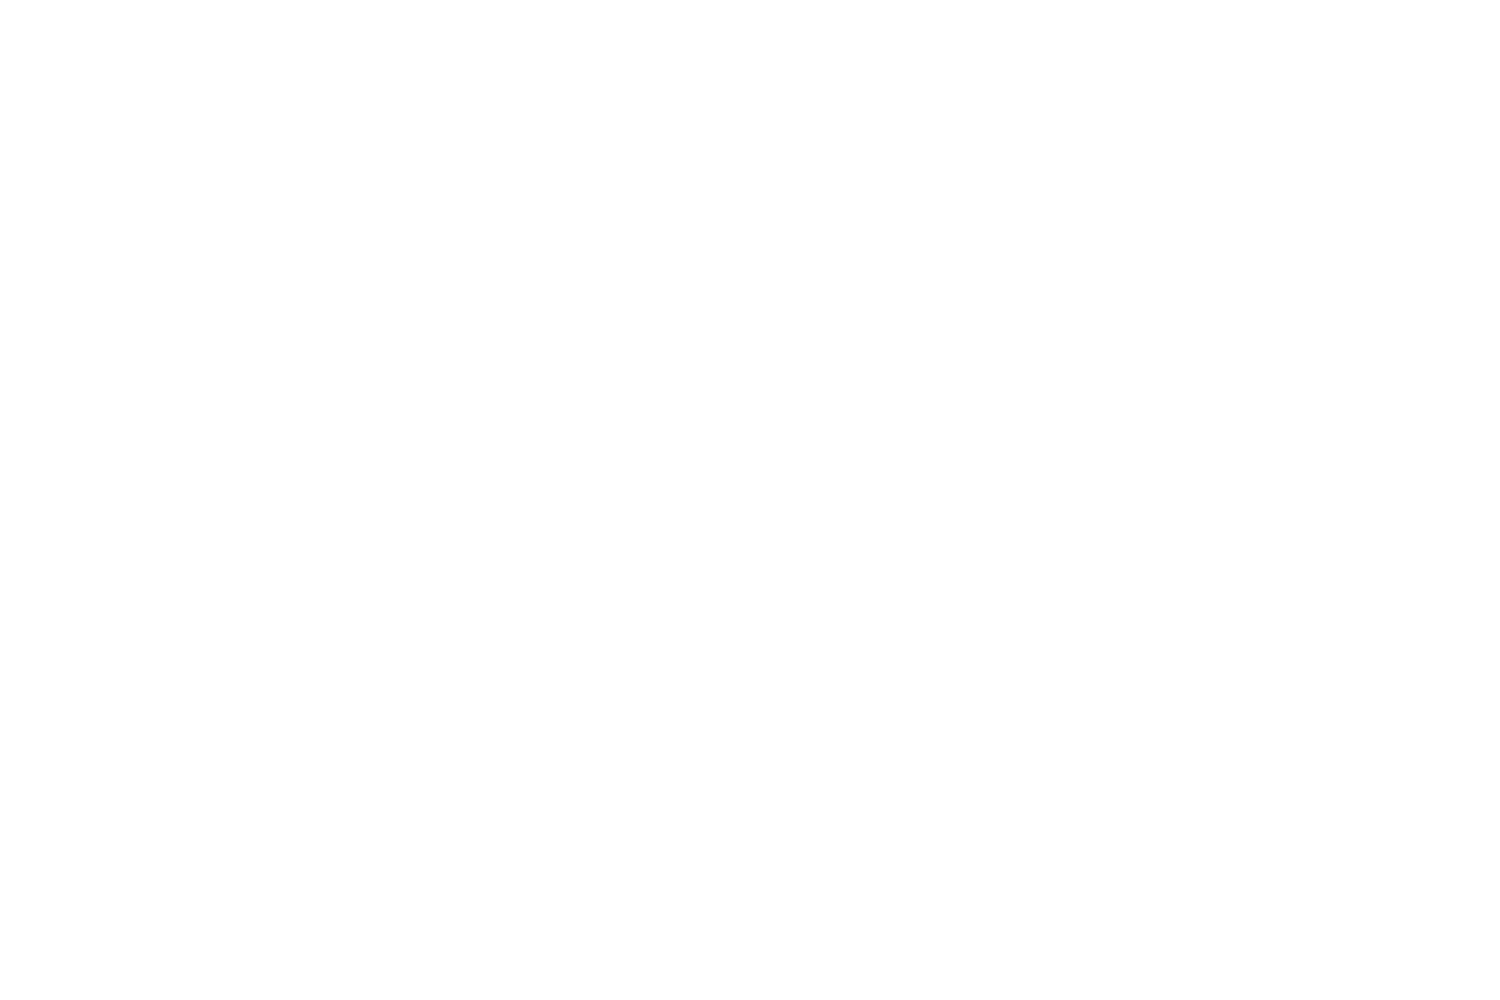 Dlores Media Group